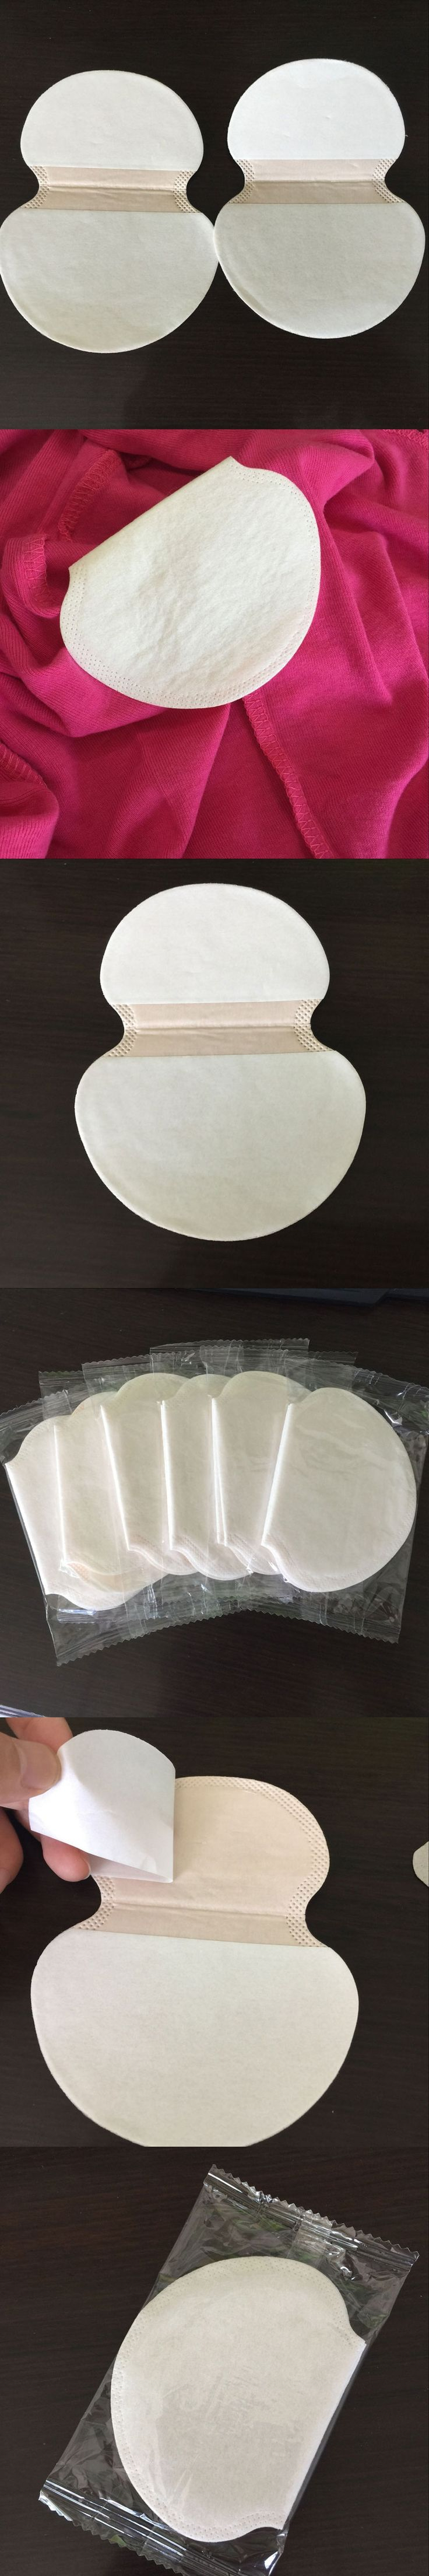 30pcs=15packs Summer Deodorants Underarm Sweat Pads Dress Clothing Perspiration Pads For Women Absorbing Pads For Armpits